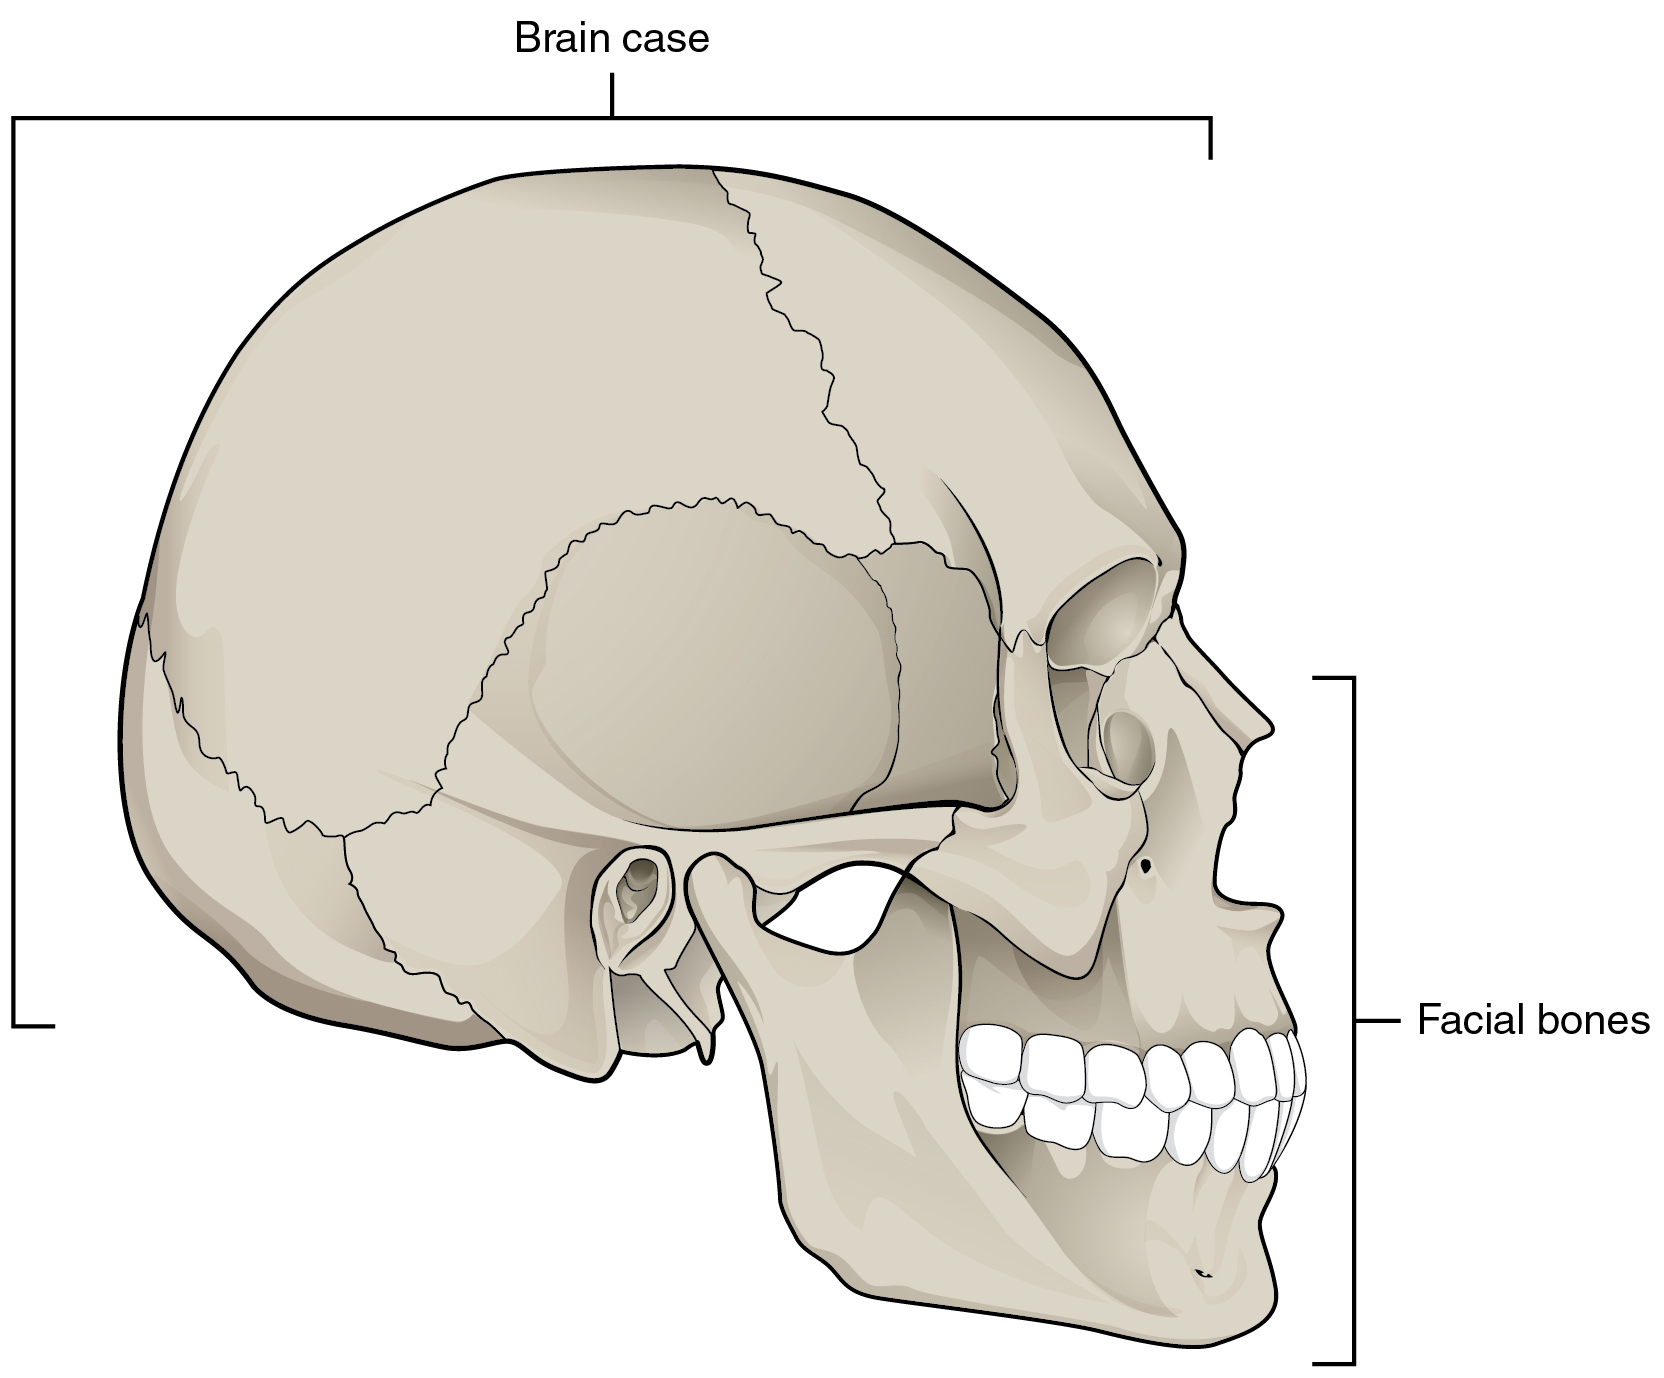 human skull bones diagram labeled iron carbon thermal equilibrium 7 2 the anatomy and physiology in this image lateral view of is shown brain figure 1